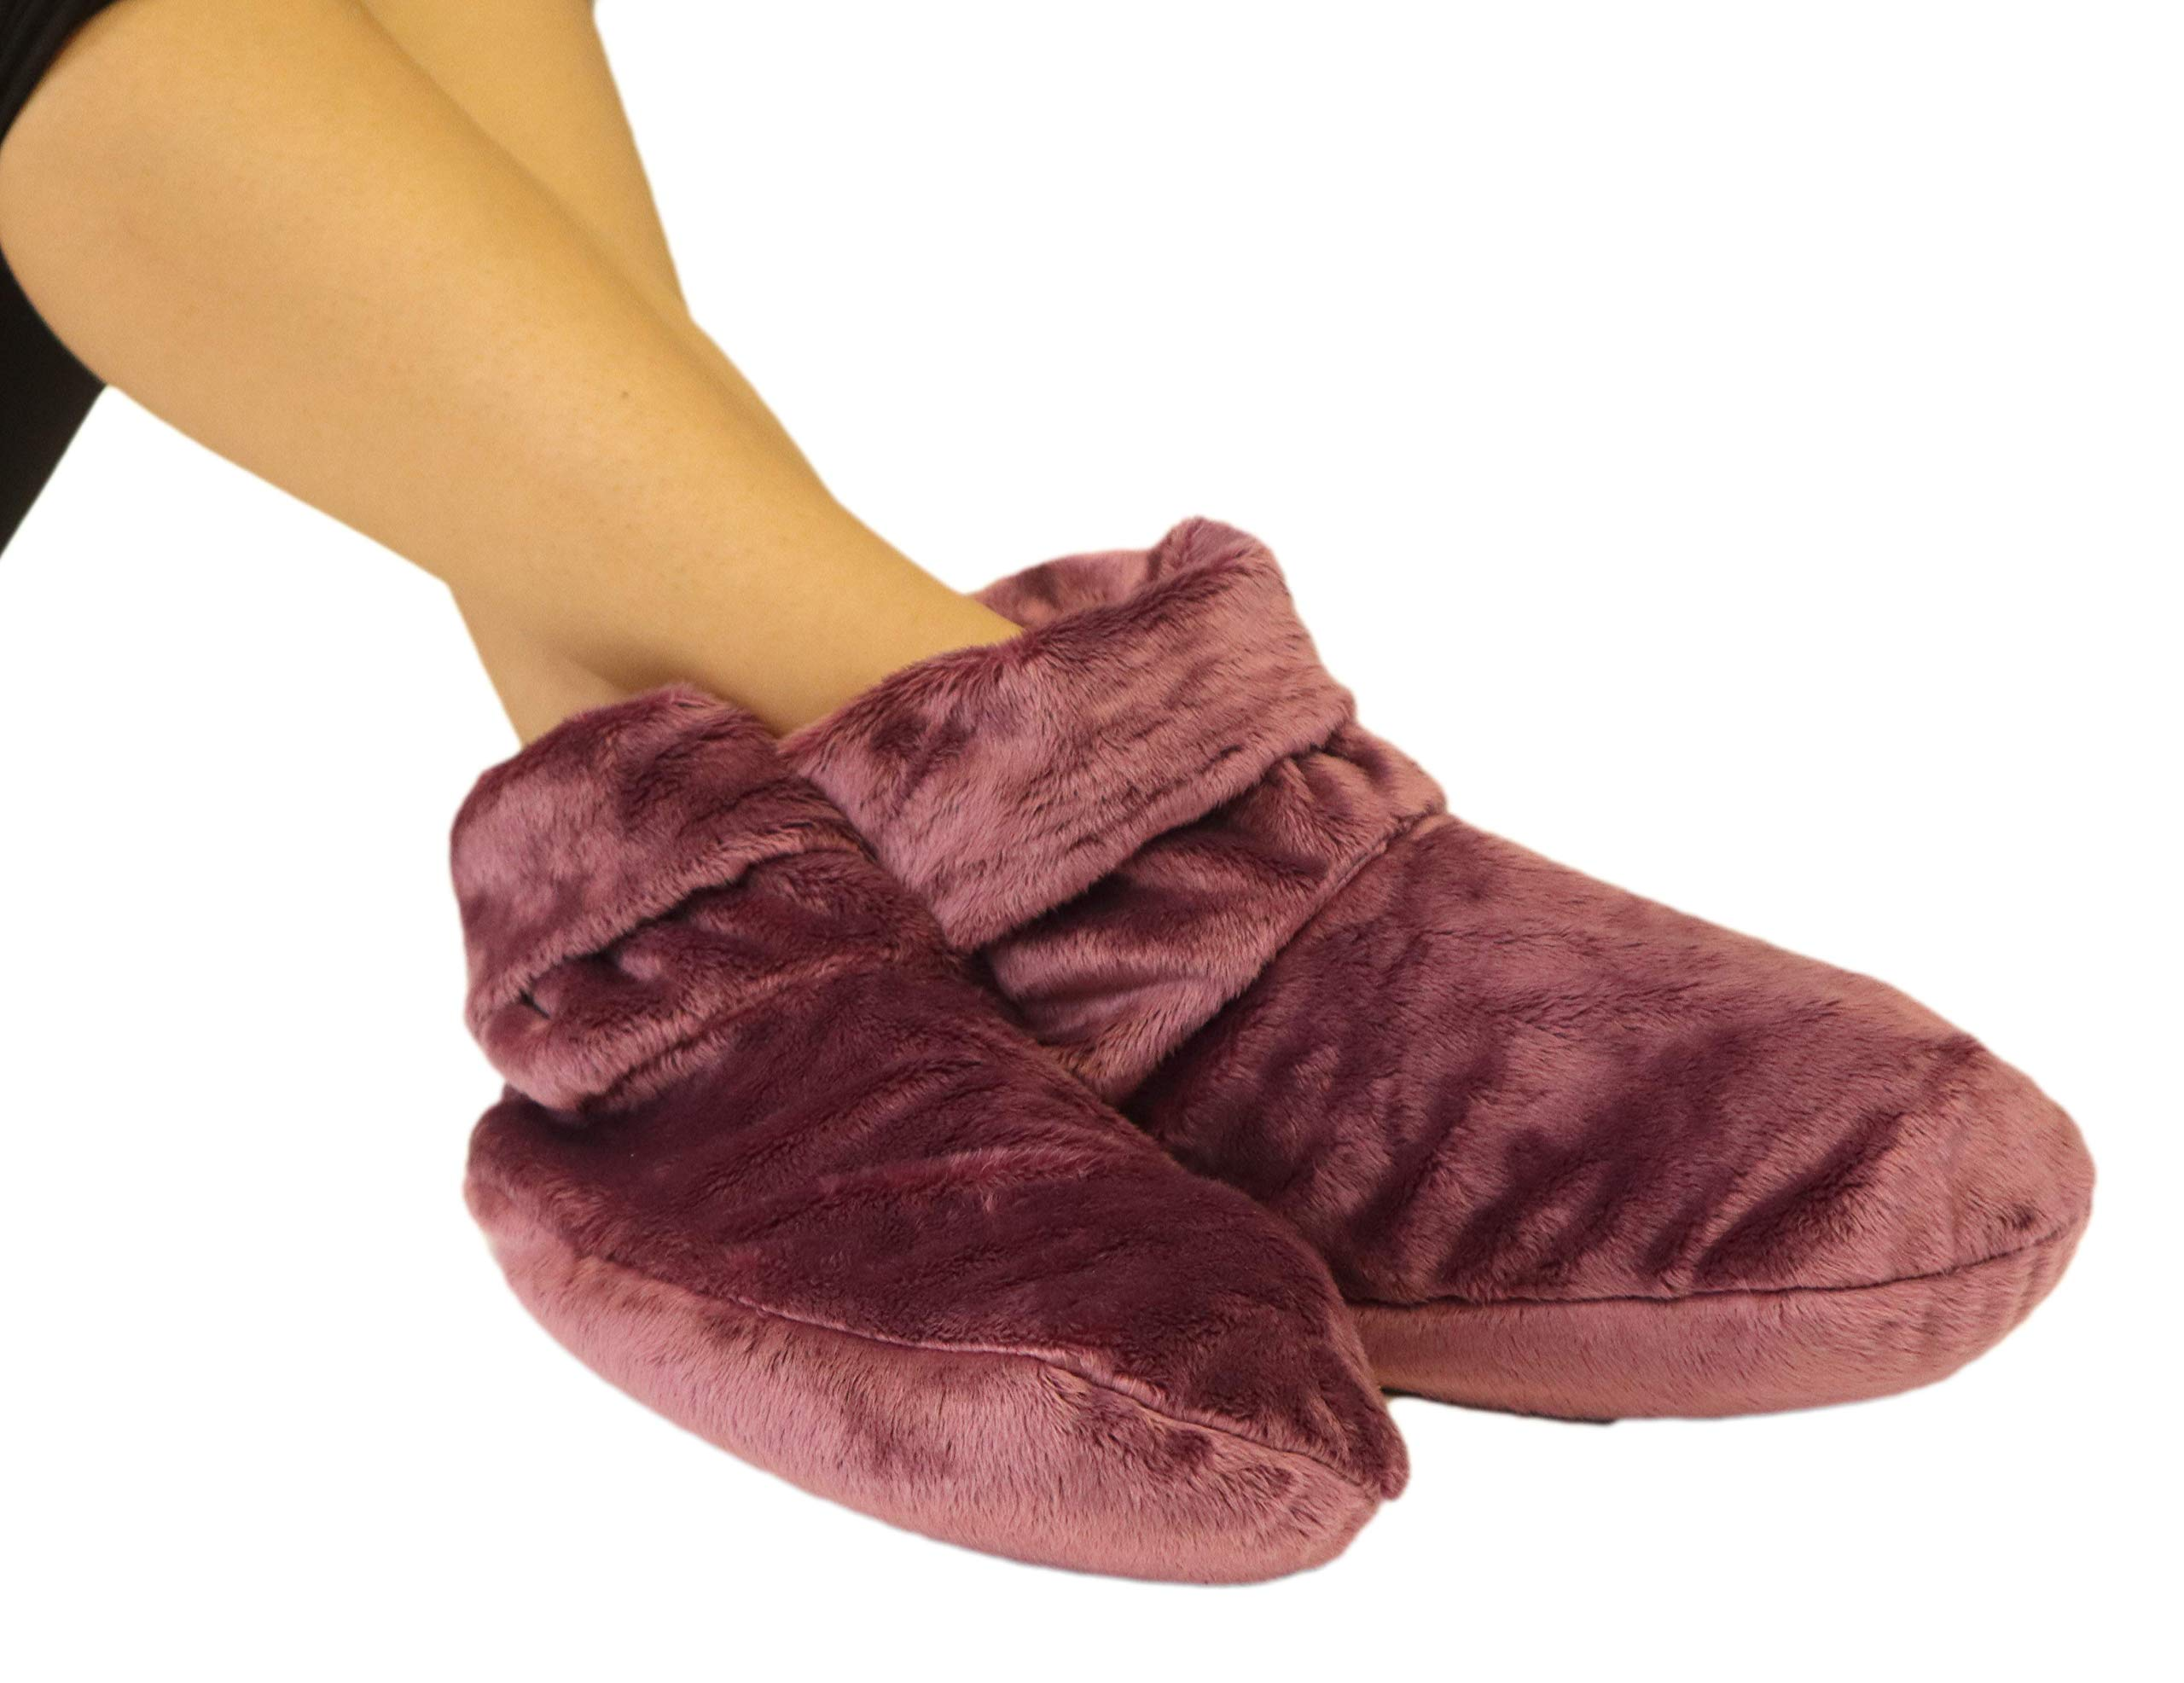 Heated Microwaveable Foot Booties - Herbal Hot/Cold Deep Penetrating Herbal Aromatherapy (Mauve) by MARS WELLNESS